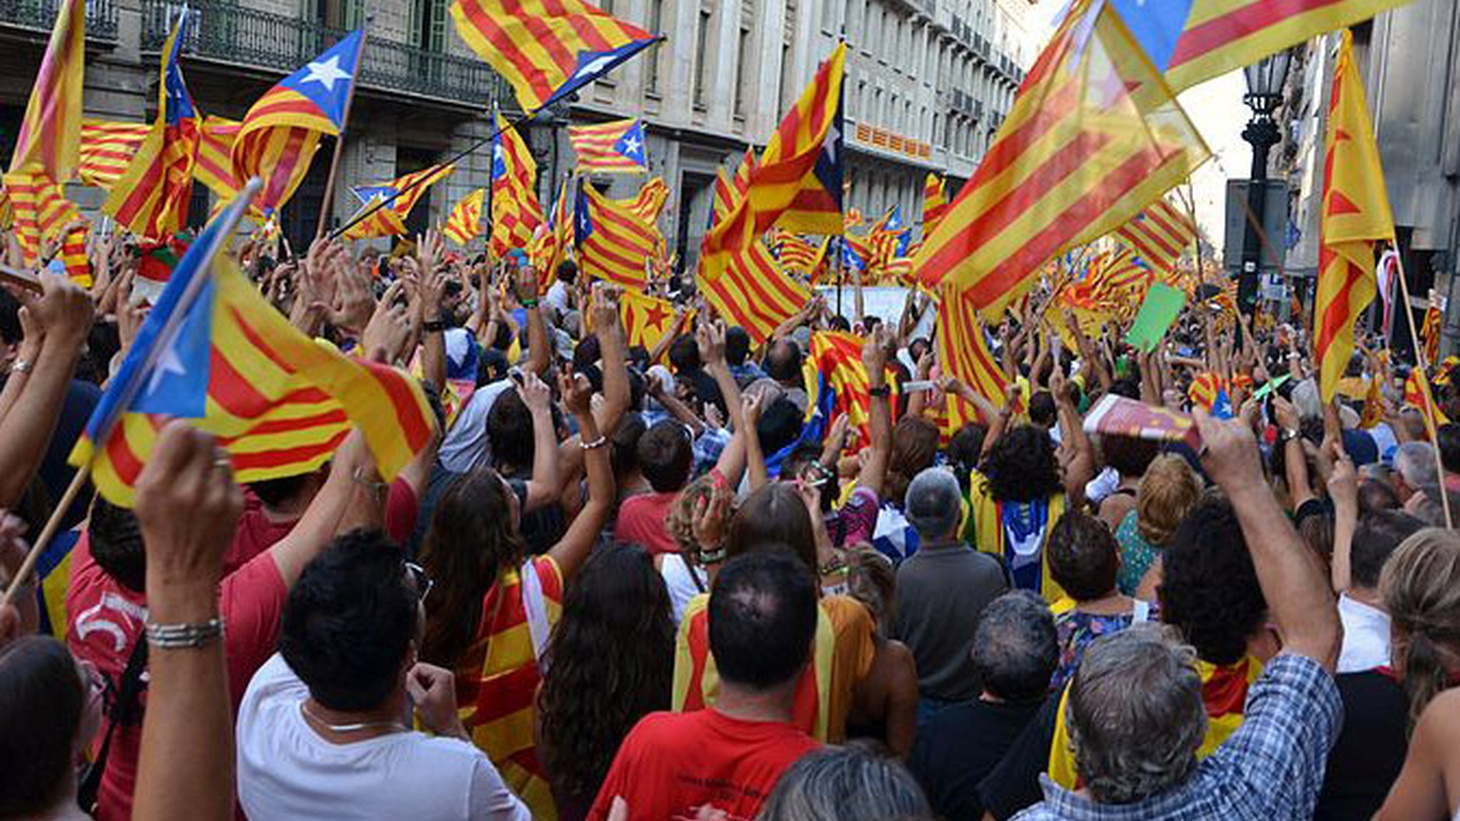 Photo by  Josep Renalias    Spanish Prime Minister Mariano Rahoy today took the first tentative step toward imposing administrative control over the would-be breakaway region of Catalonia. He asked Catalan President Carles Puigdemont to clarify whether he'd actually meant to declare independence in a speech yesterday. If he did, the Spanish…